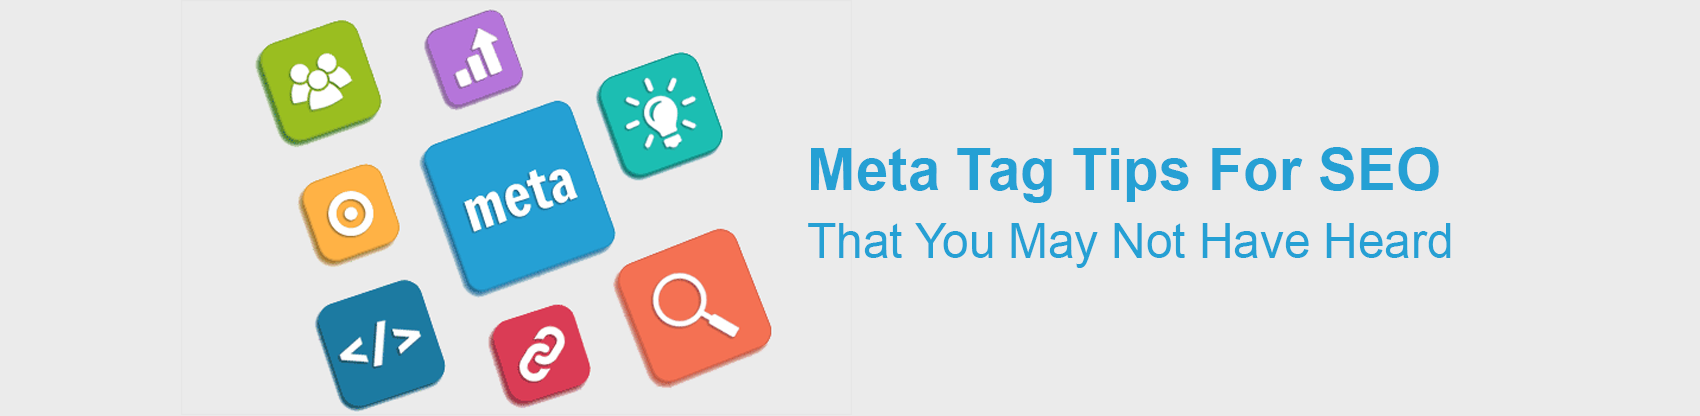 Meta Tag Tips for SEO that you may not have heard